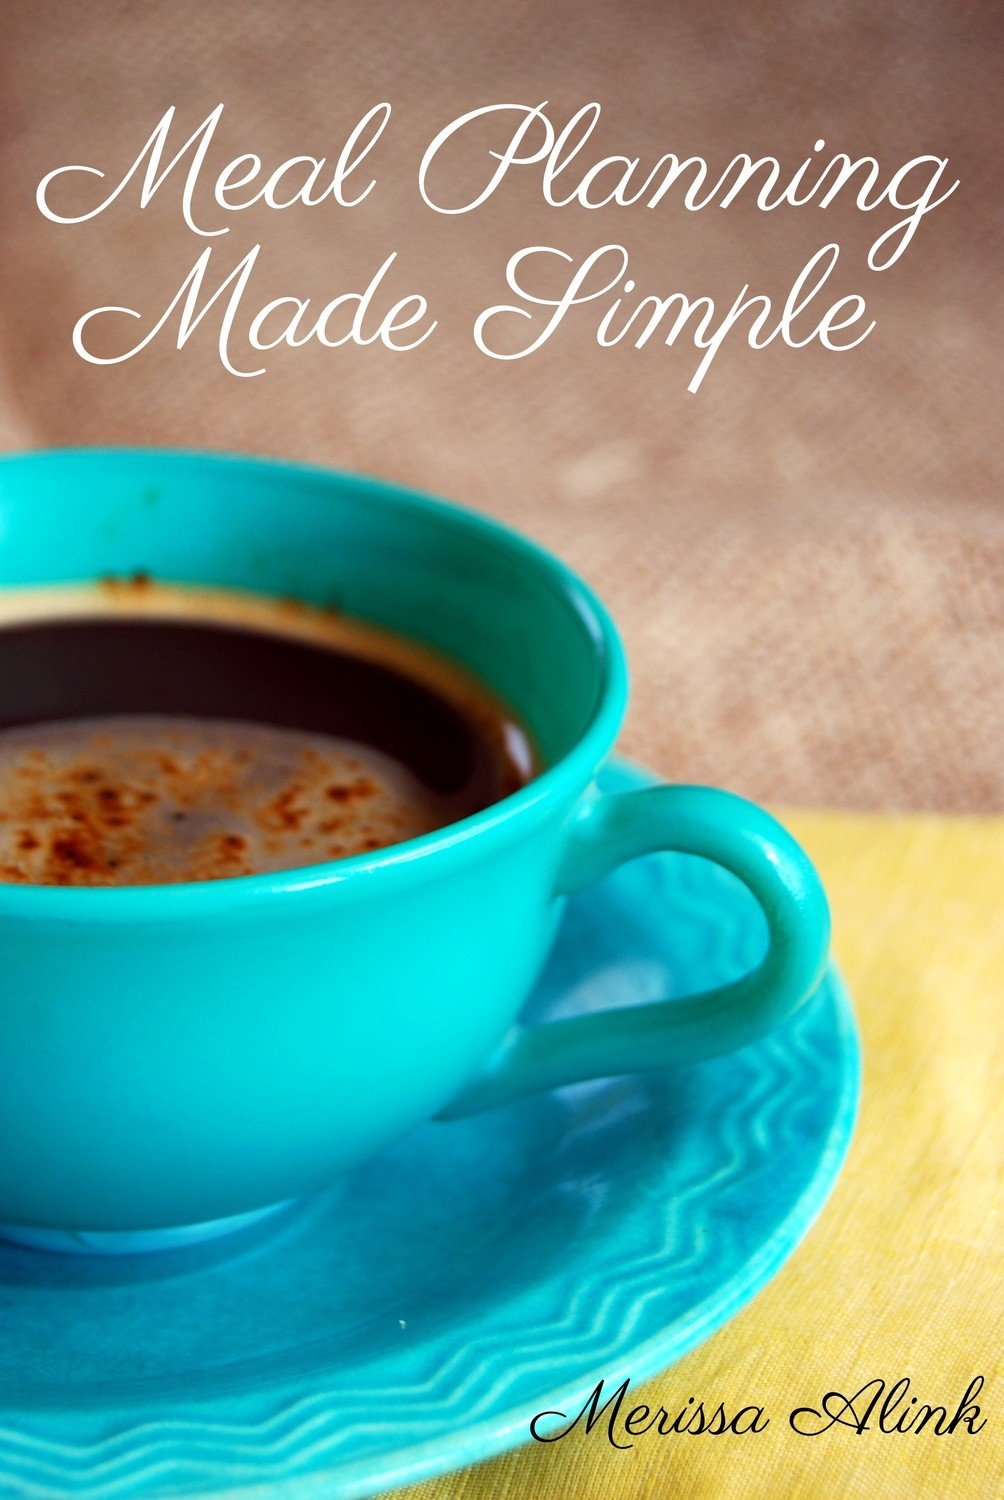 Meal Planning Made Simple (Instant Download Ebook)